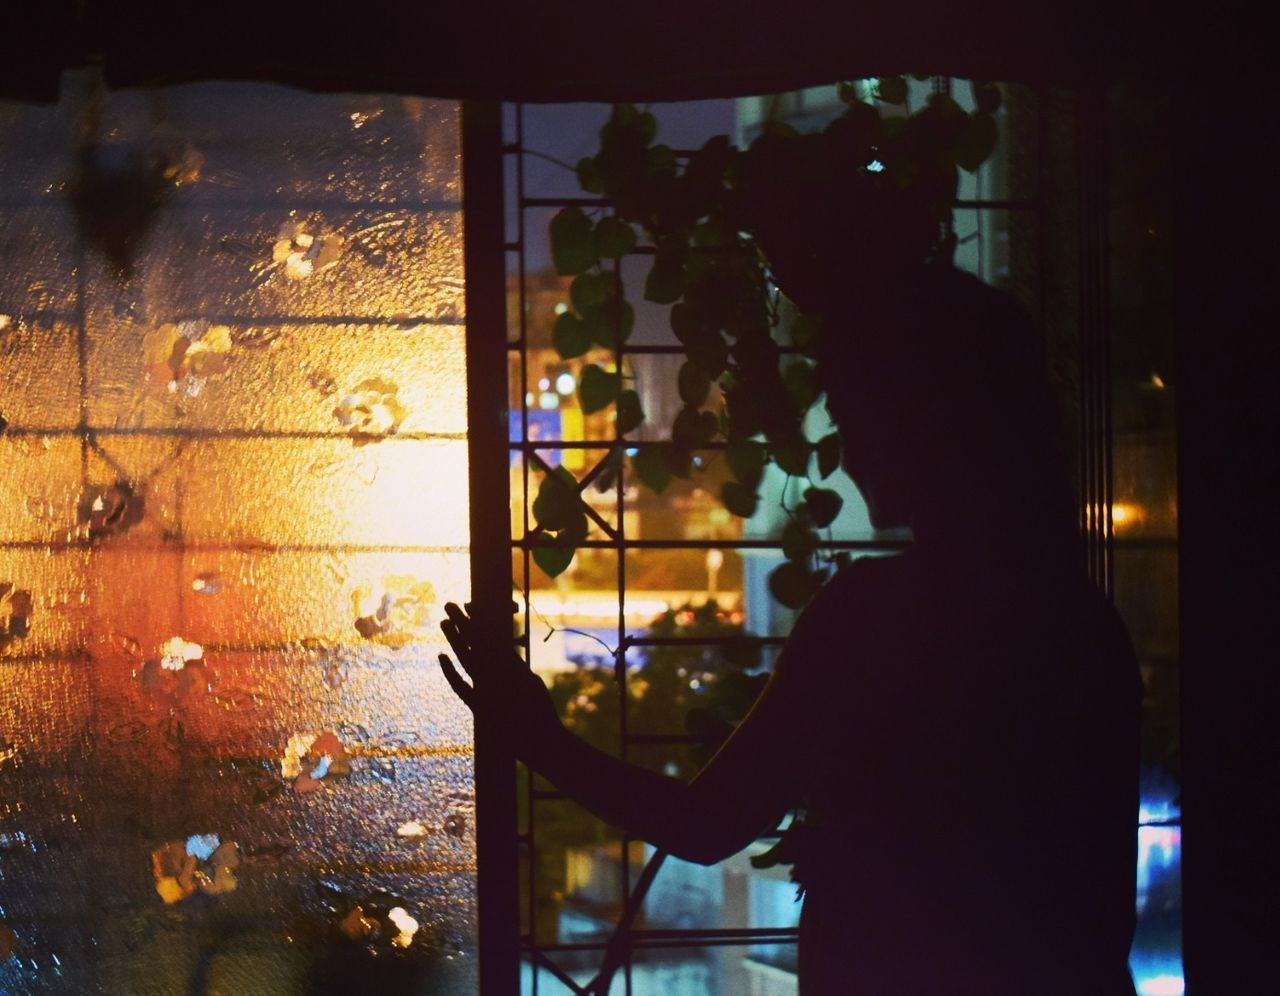 Rear View Of Woman Looking Through Window At Night